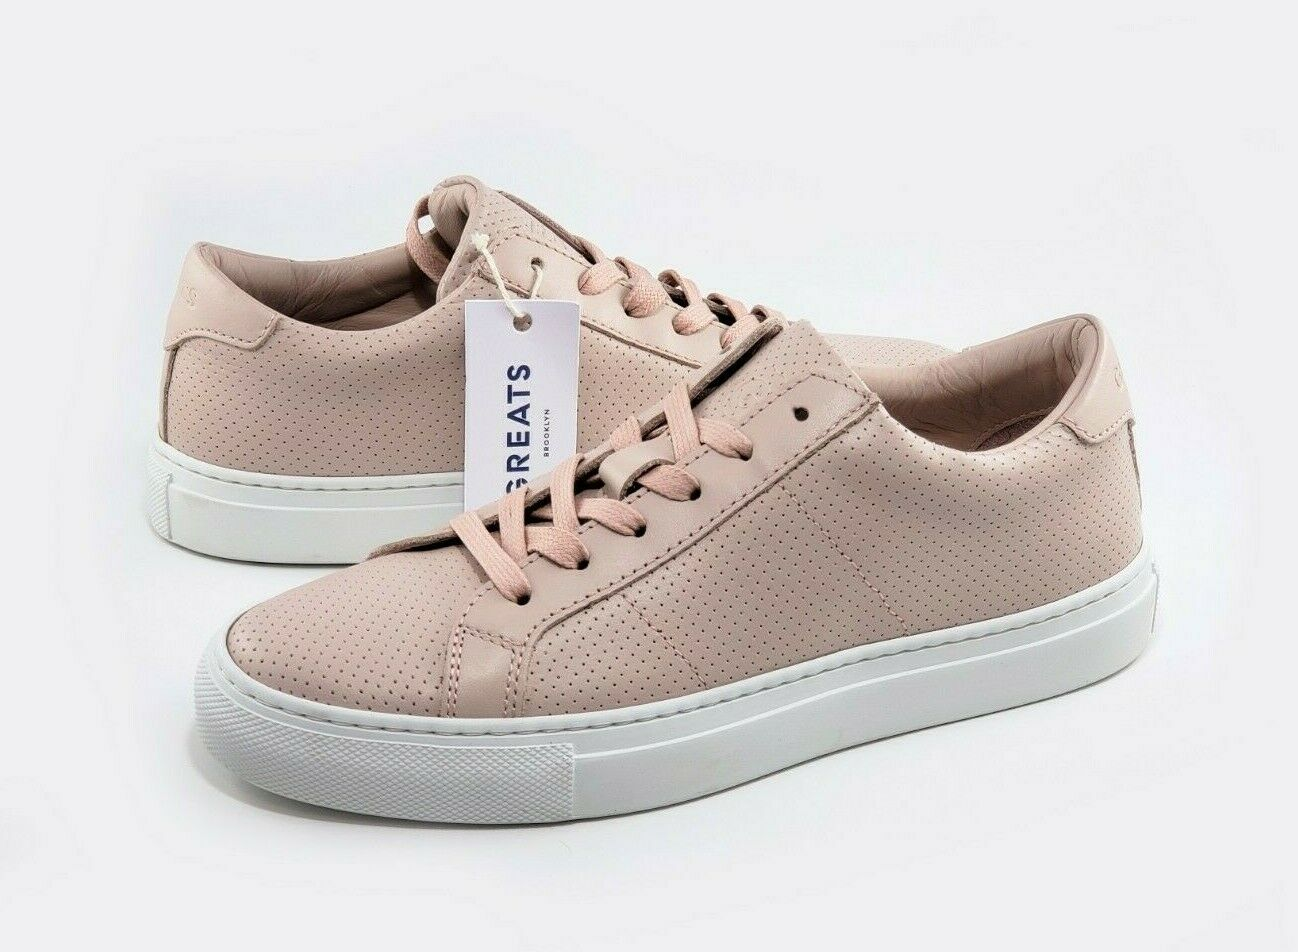 NEW Greats Royale Womens shoes bluesh Perforated Leather Italian Sneaker Sz 9.5